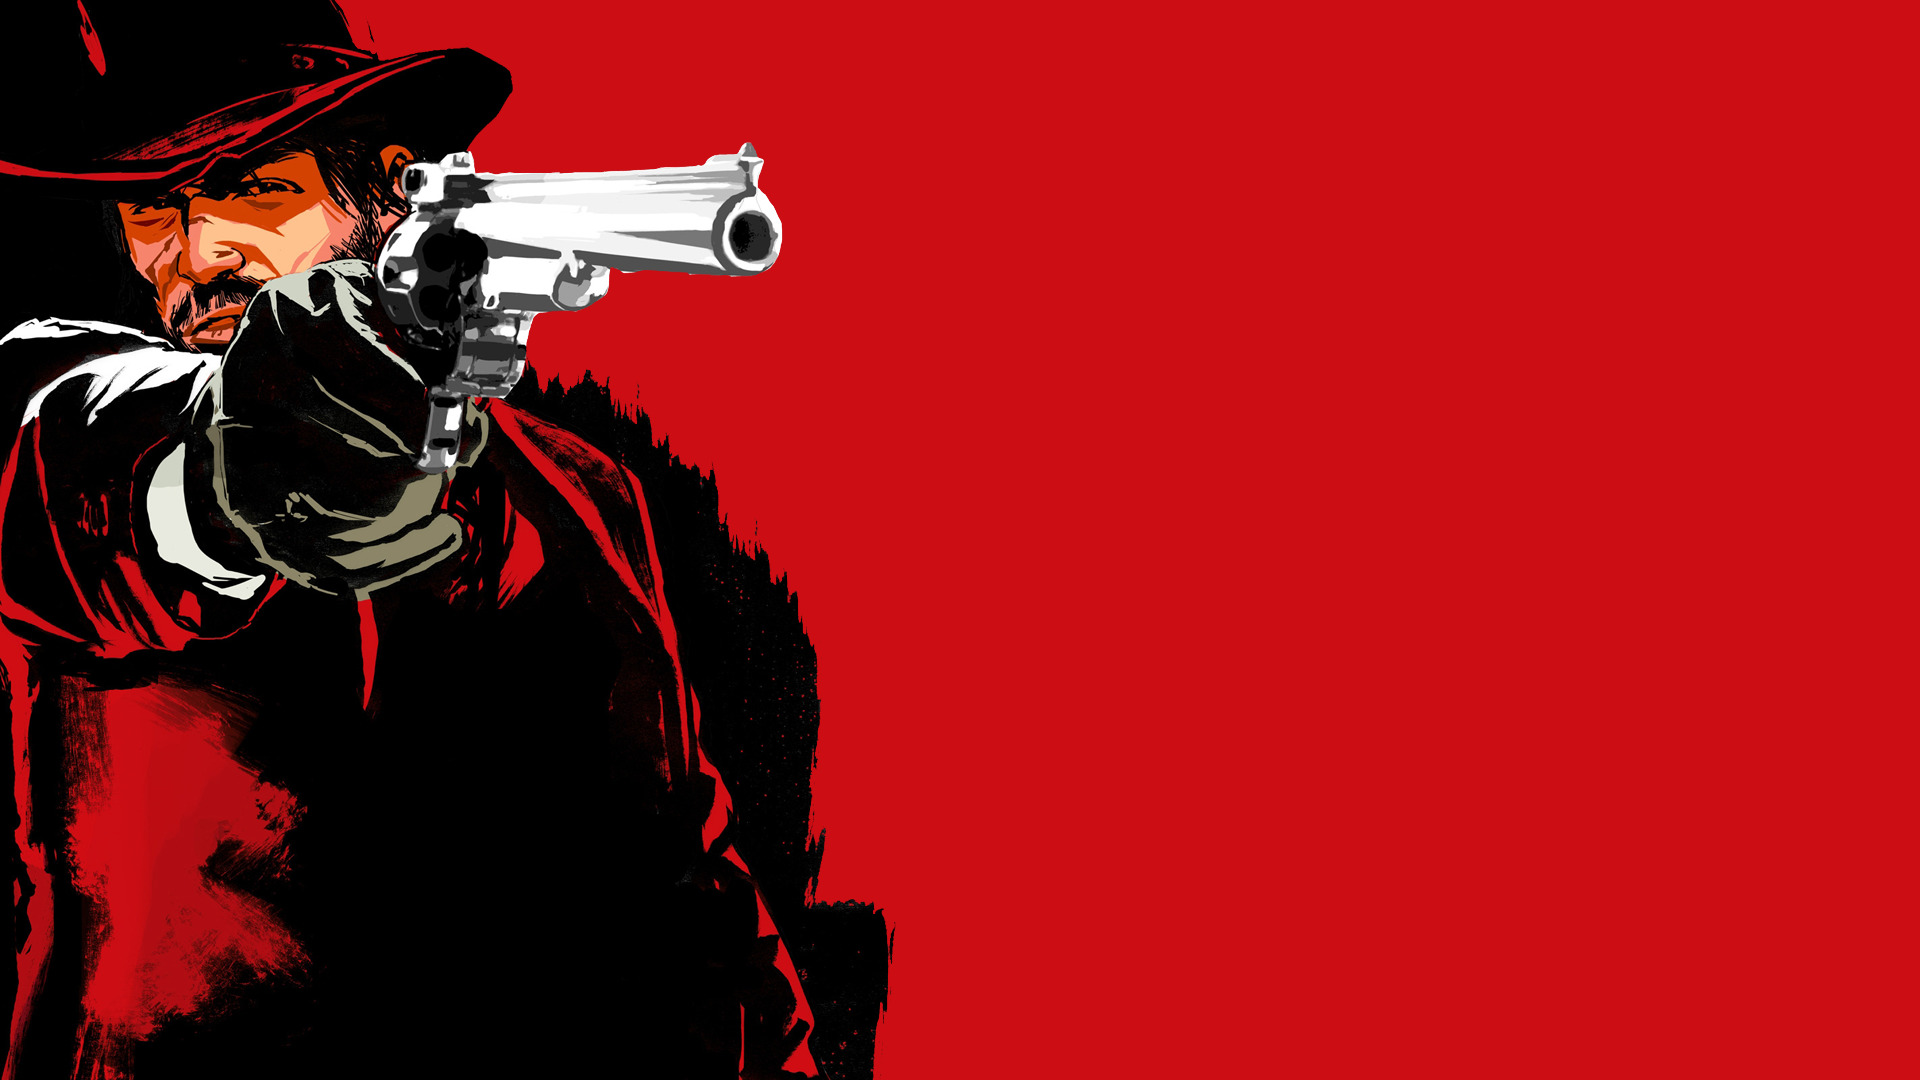 Guns Cowboys red dead HD Wallpaper